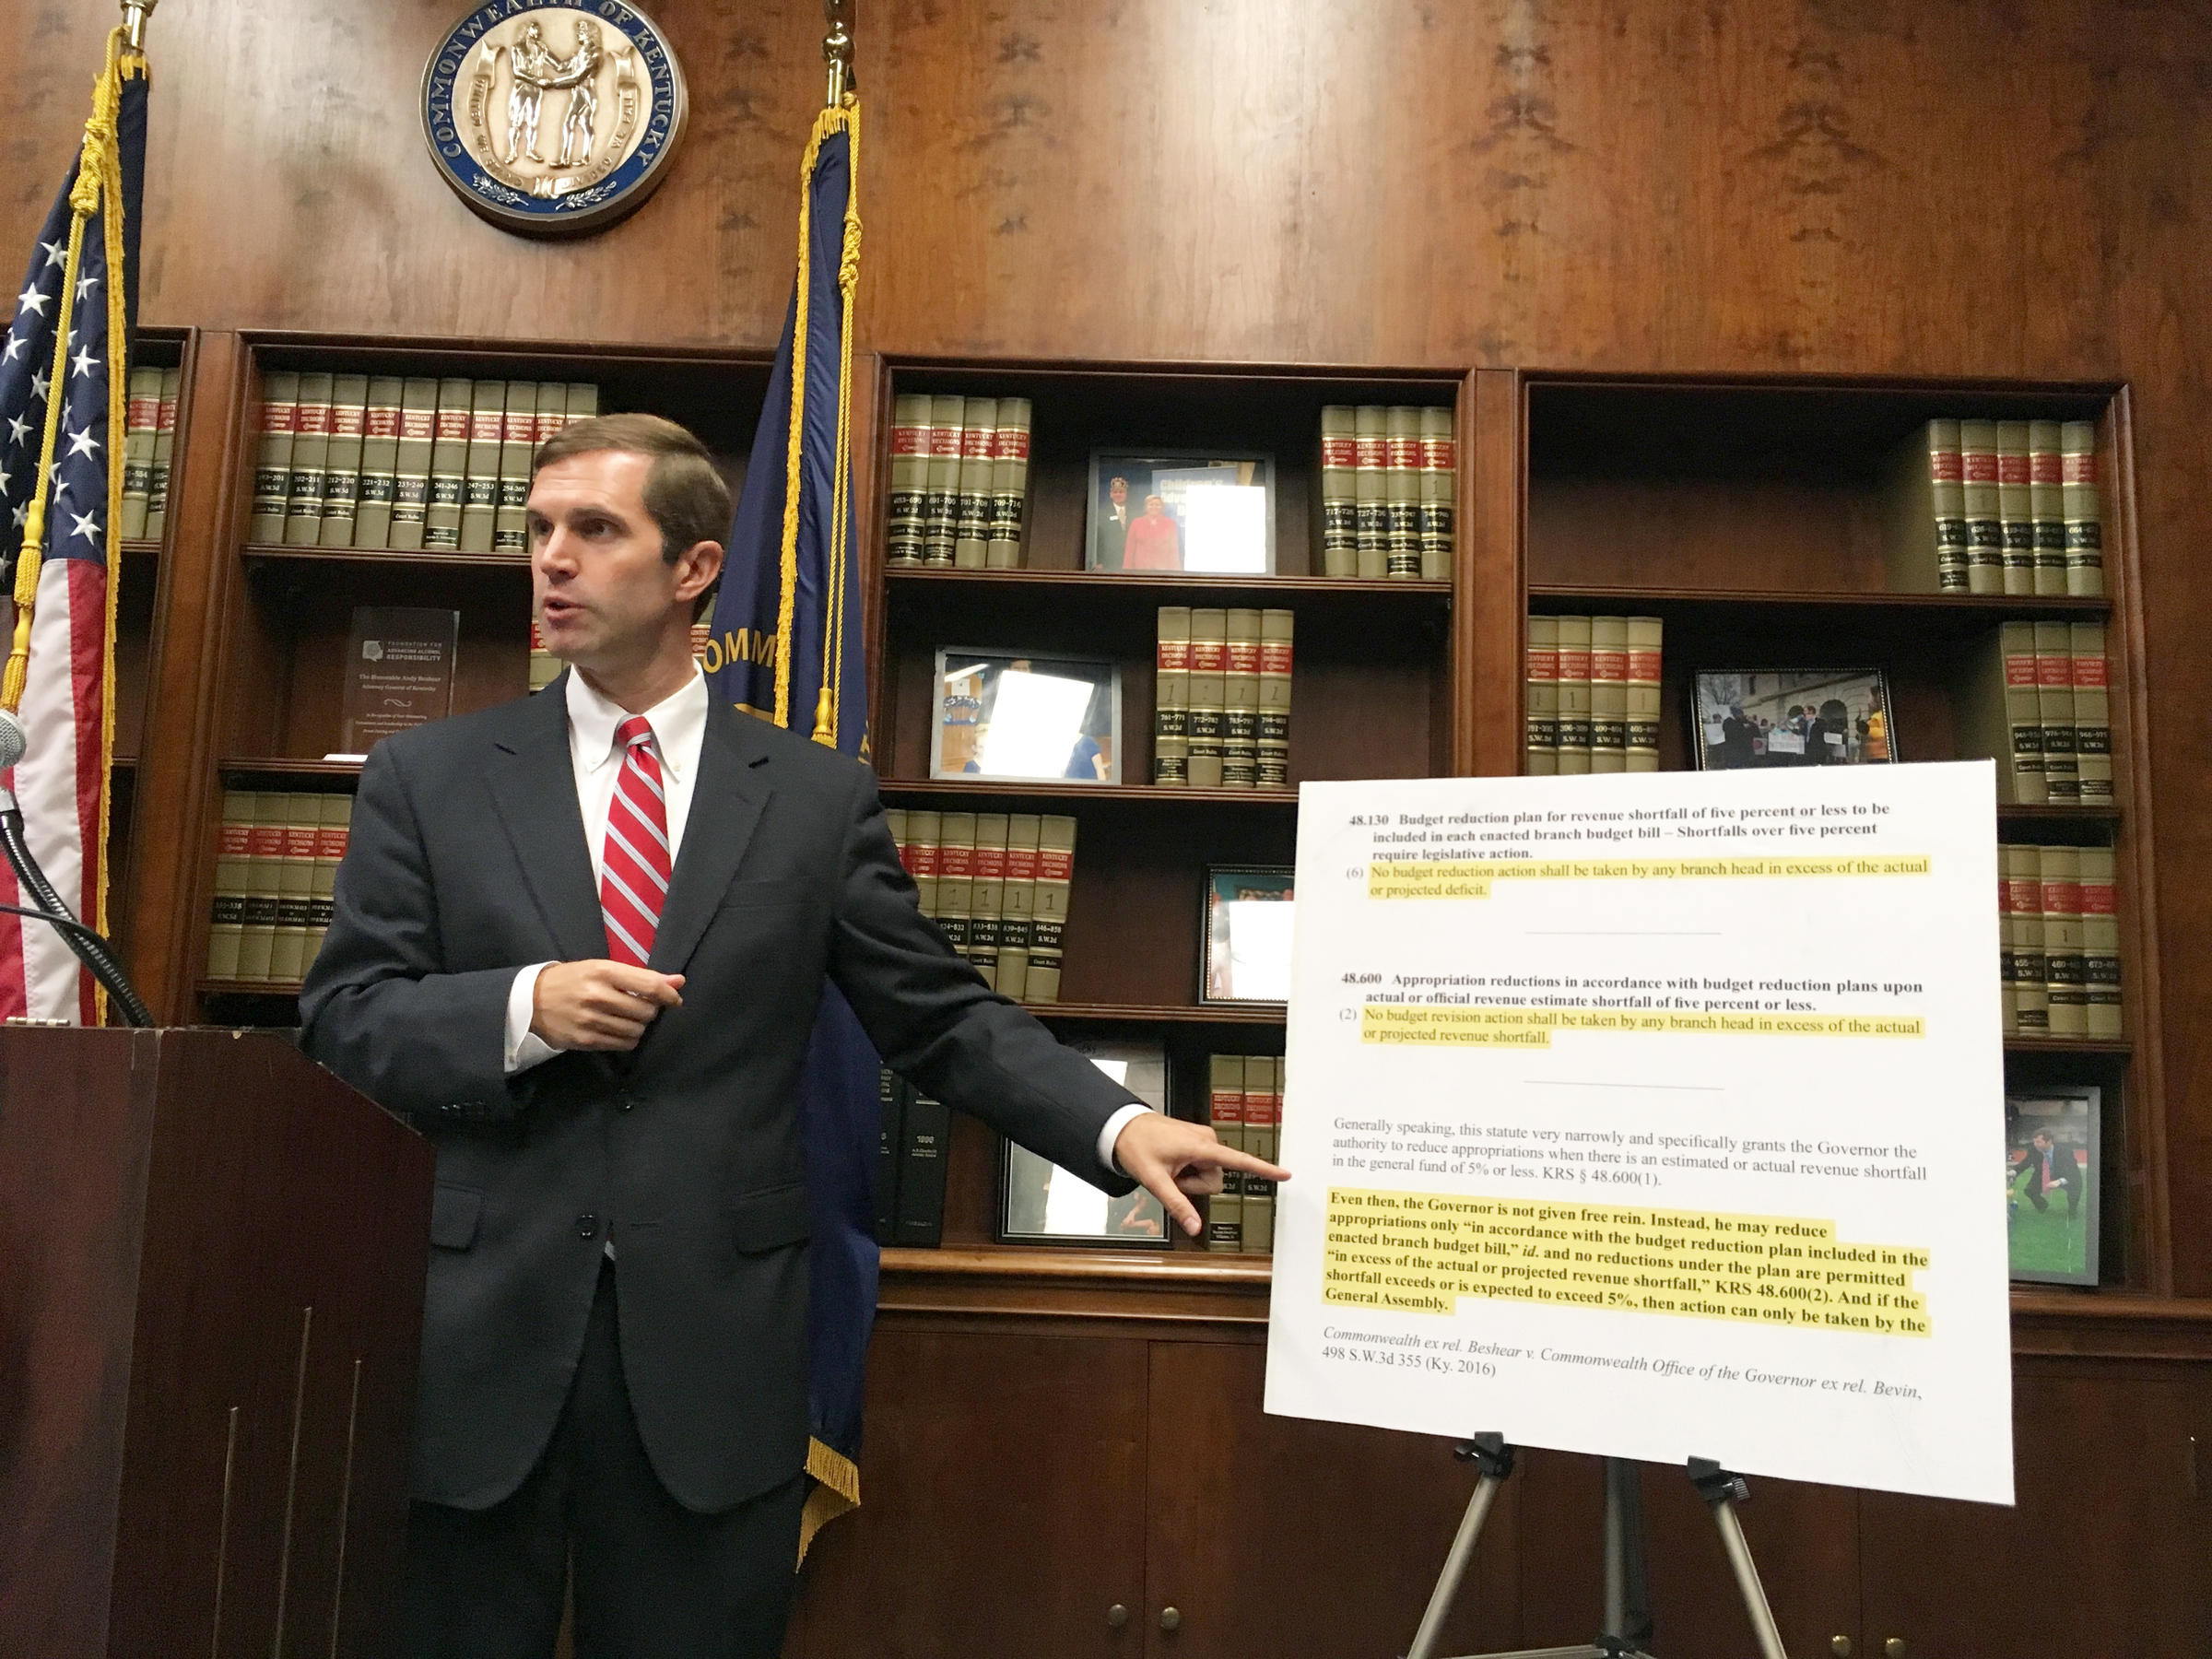 Beshear Says Bevin's Proposed Budget Cuts Are Illegal